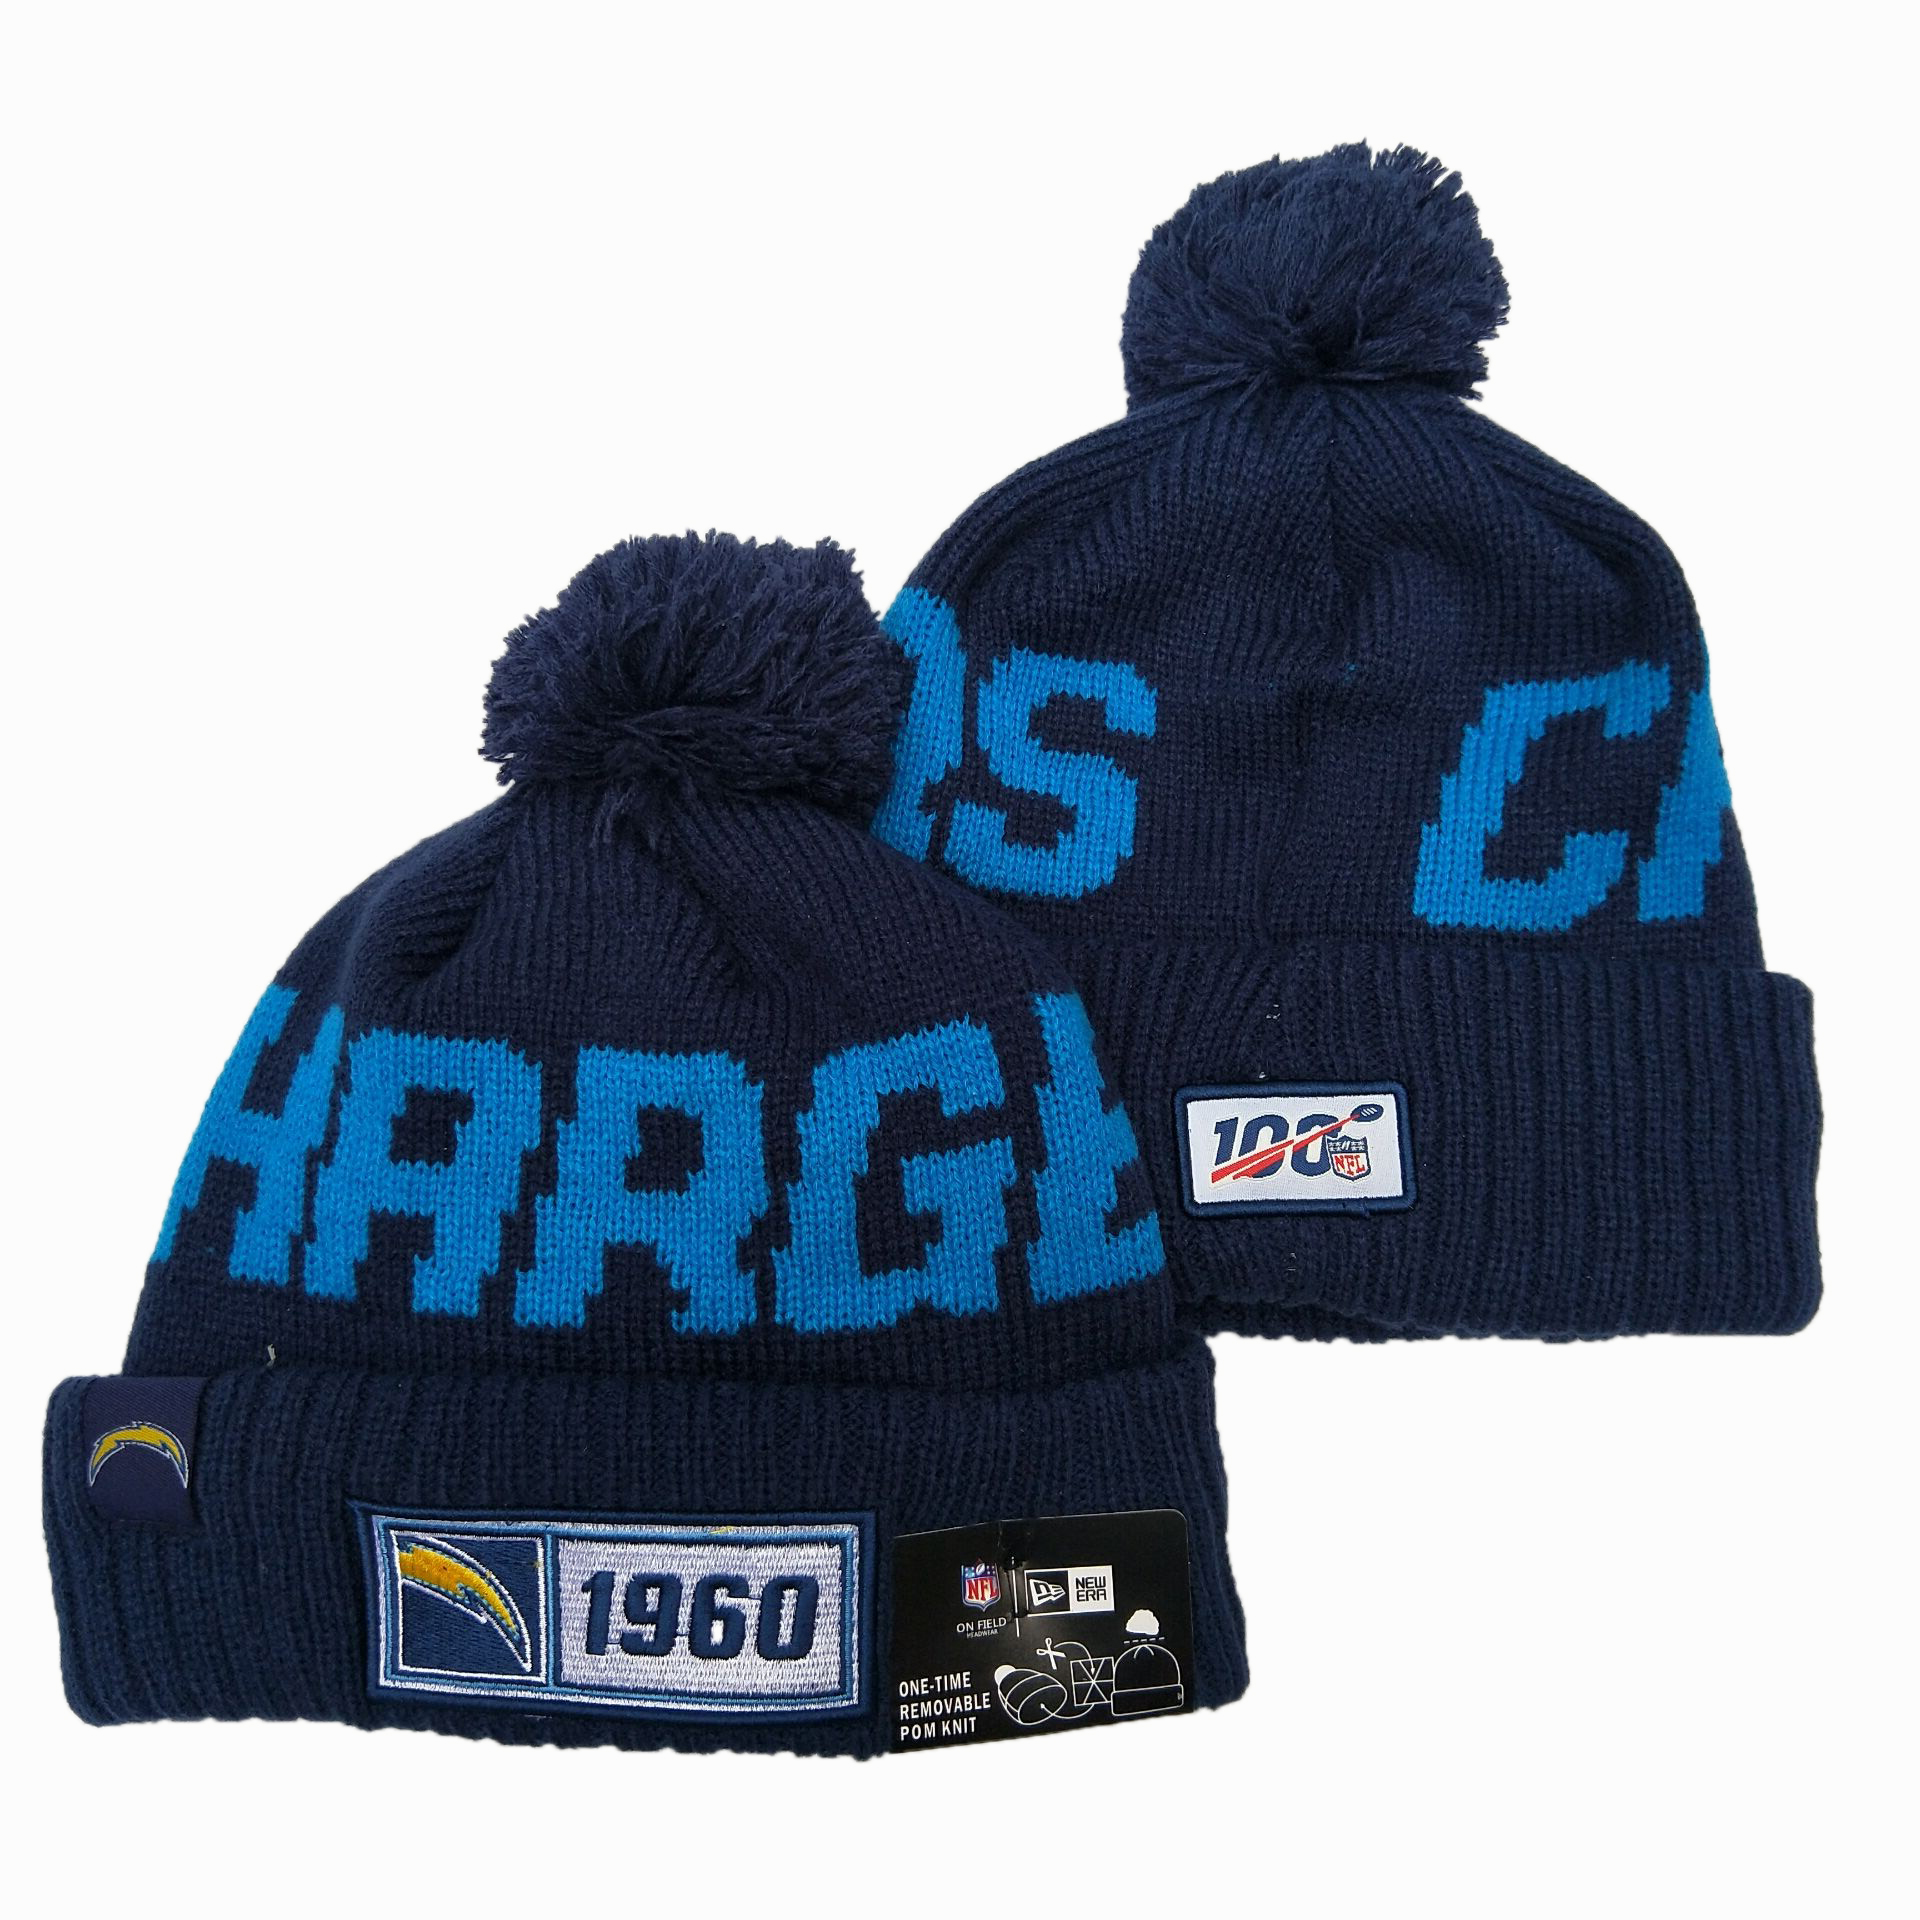 NFL Los Angeles Chargers New Era 2019 Sideline Road Reverse Sport Knit Hats 010